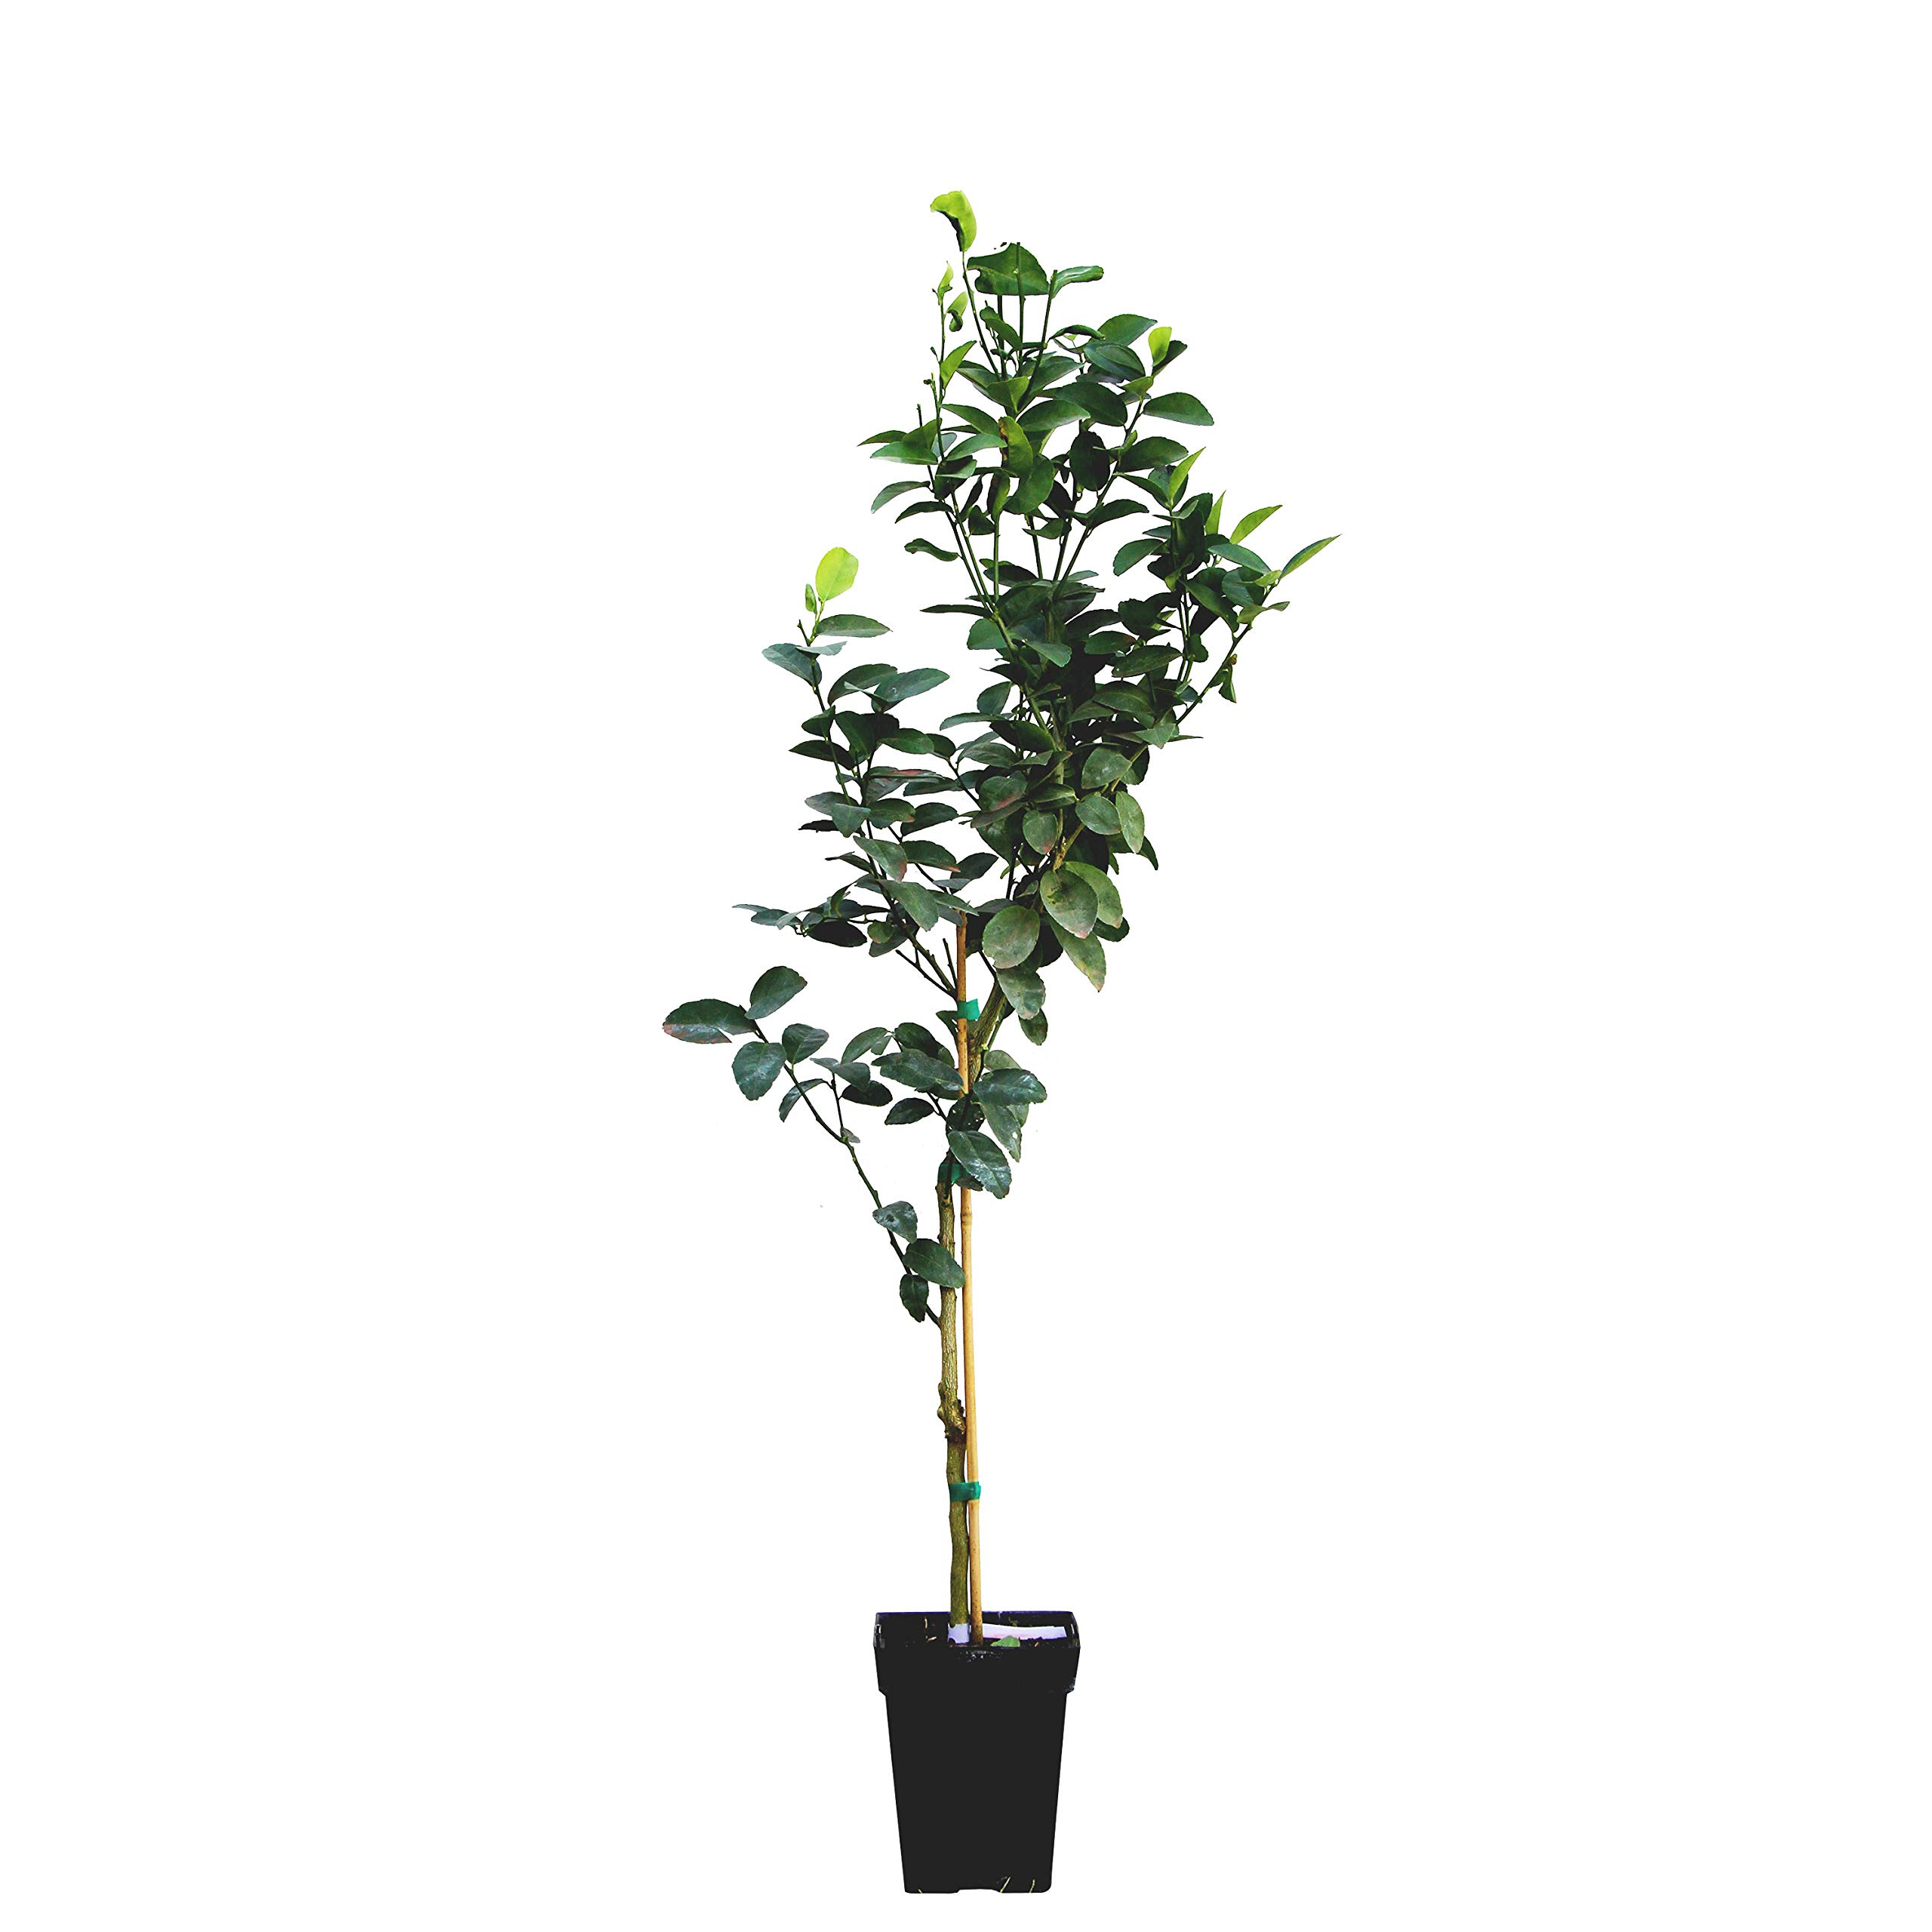 Key Lime Tree - Dwarf Fruit Trees - Indoor/Outdoor Live Potted Citrus Tree - 3-4 ft. Tall Trees - Cannot Ship to FL, CA, TX, LA or AZ